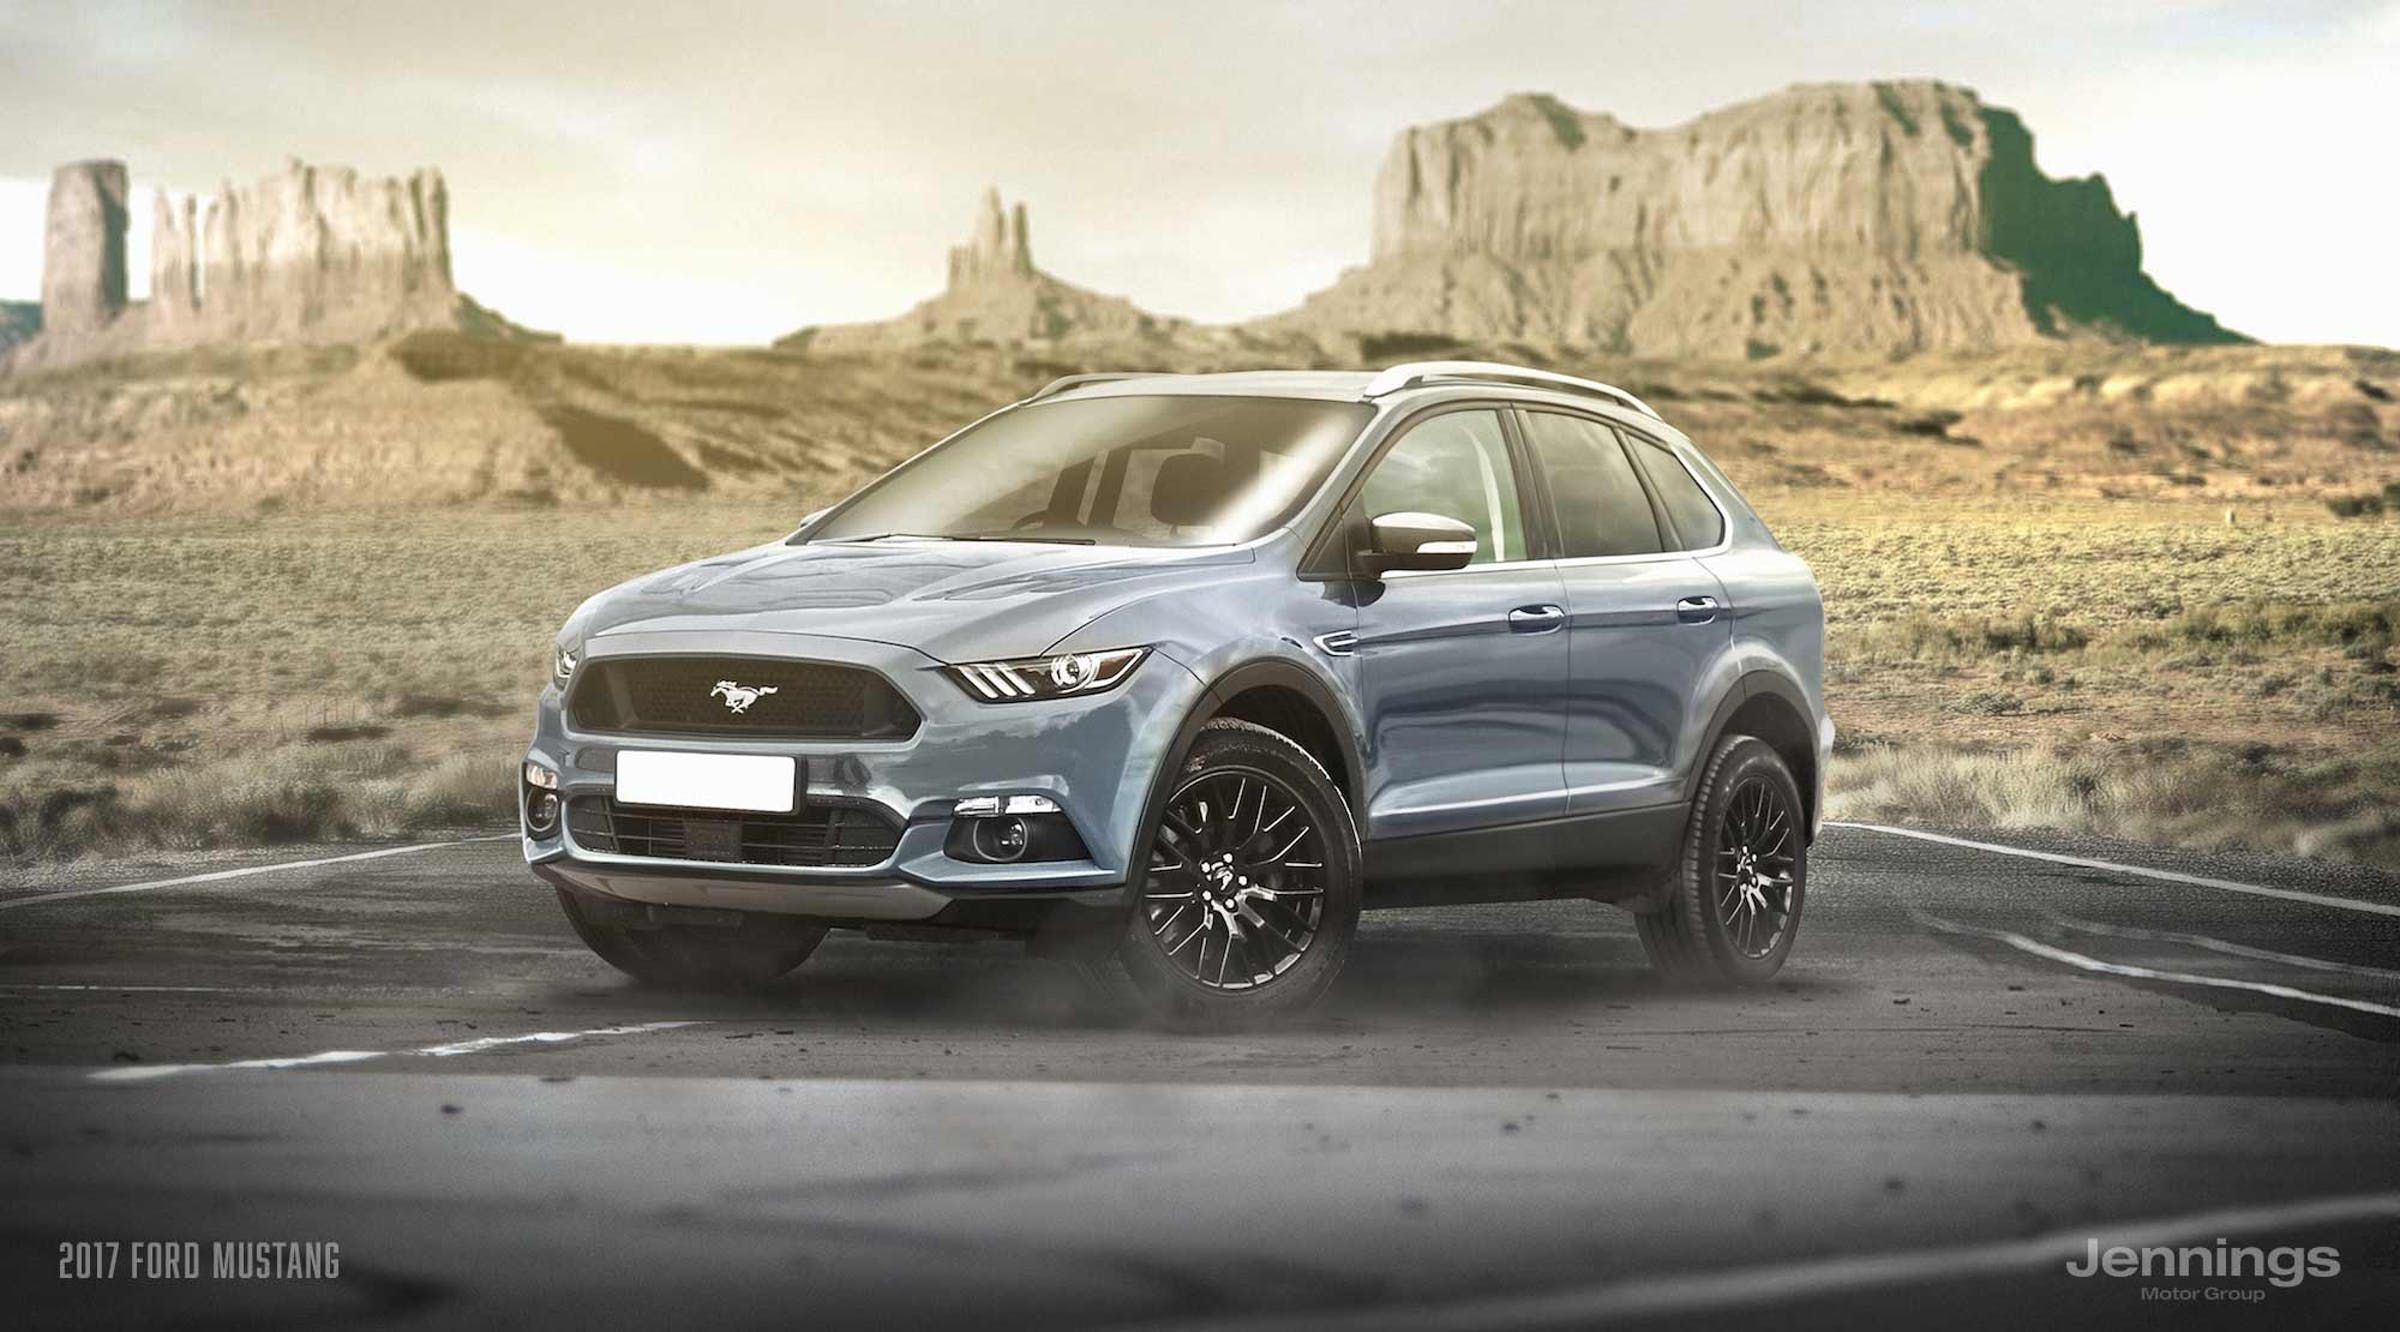 Ford Mustang SUV Concept/Rendering Ford mustang suv